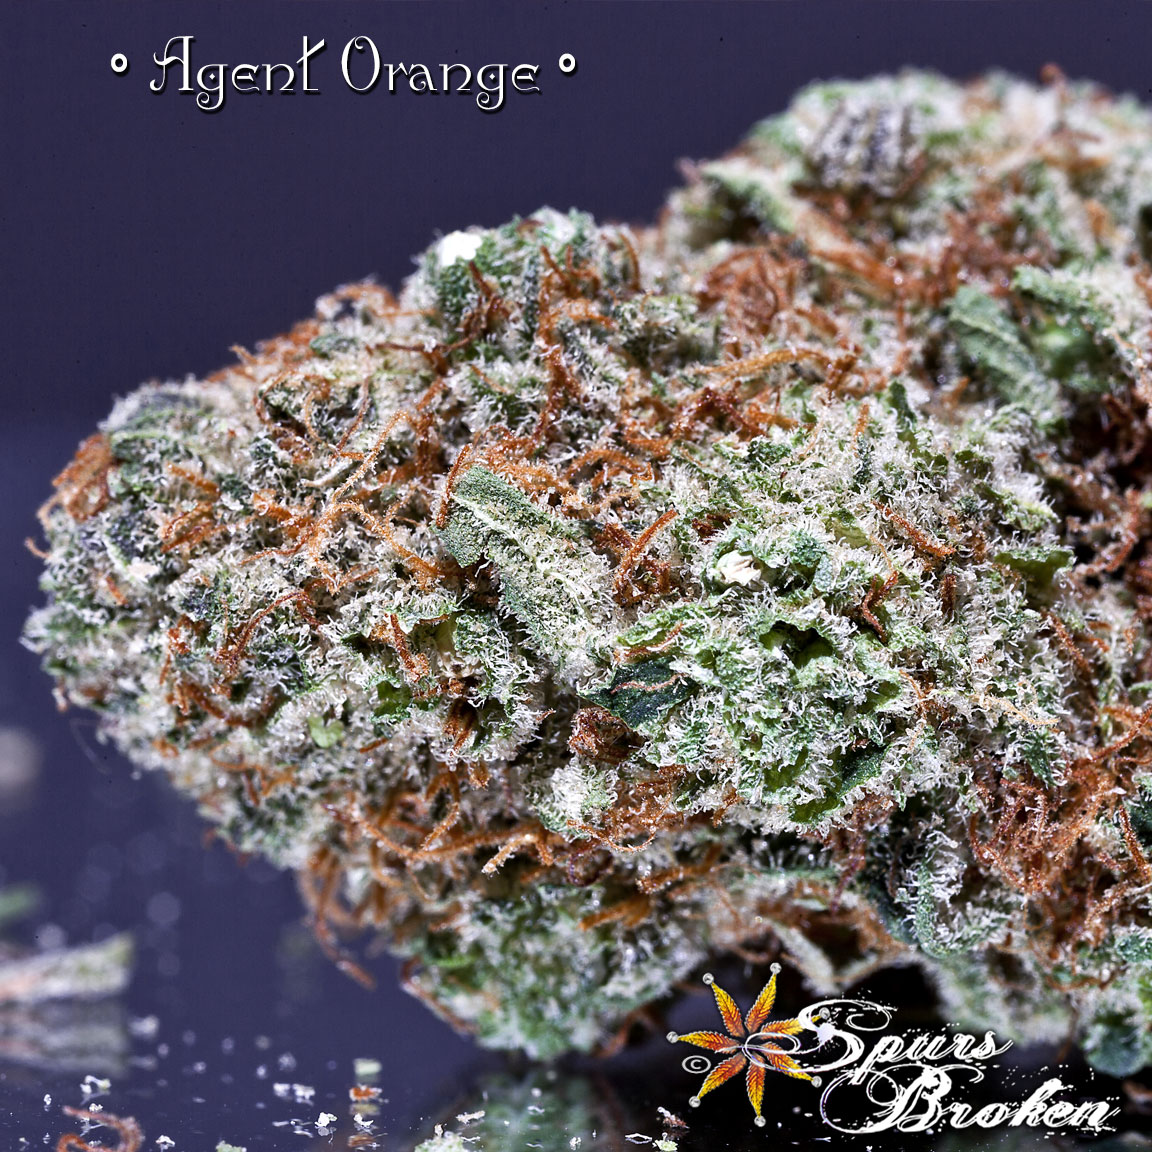 Agent Orange - Cannabis Macro Photography by Spurs Broken (Robert R. Sanders)